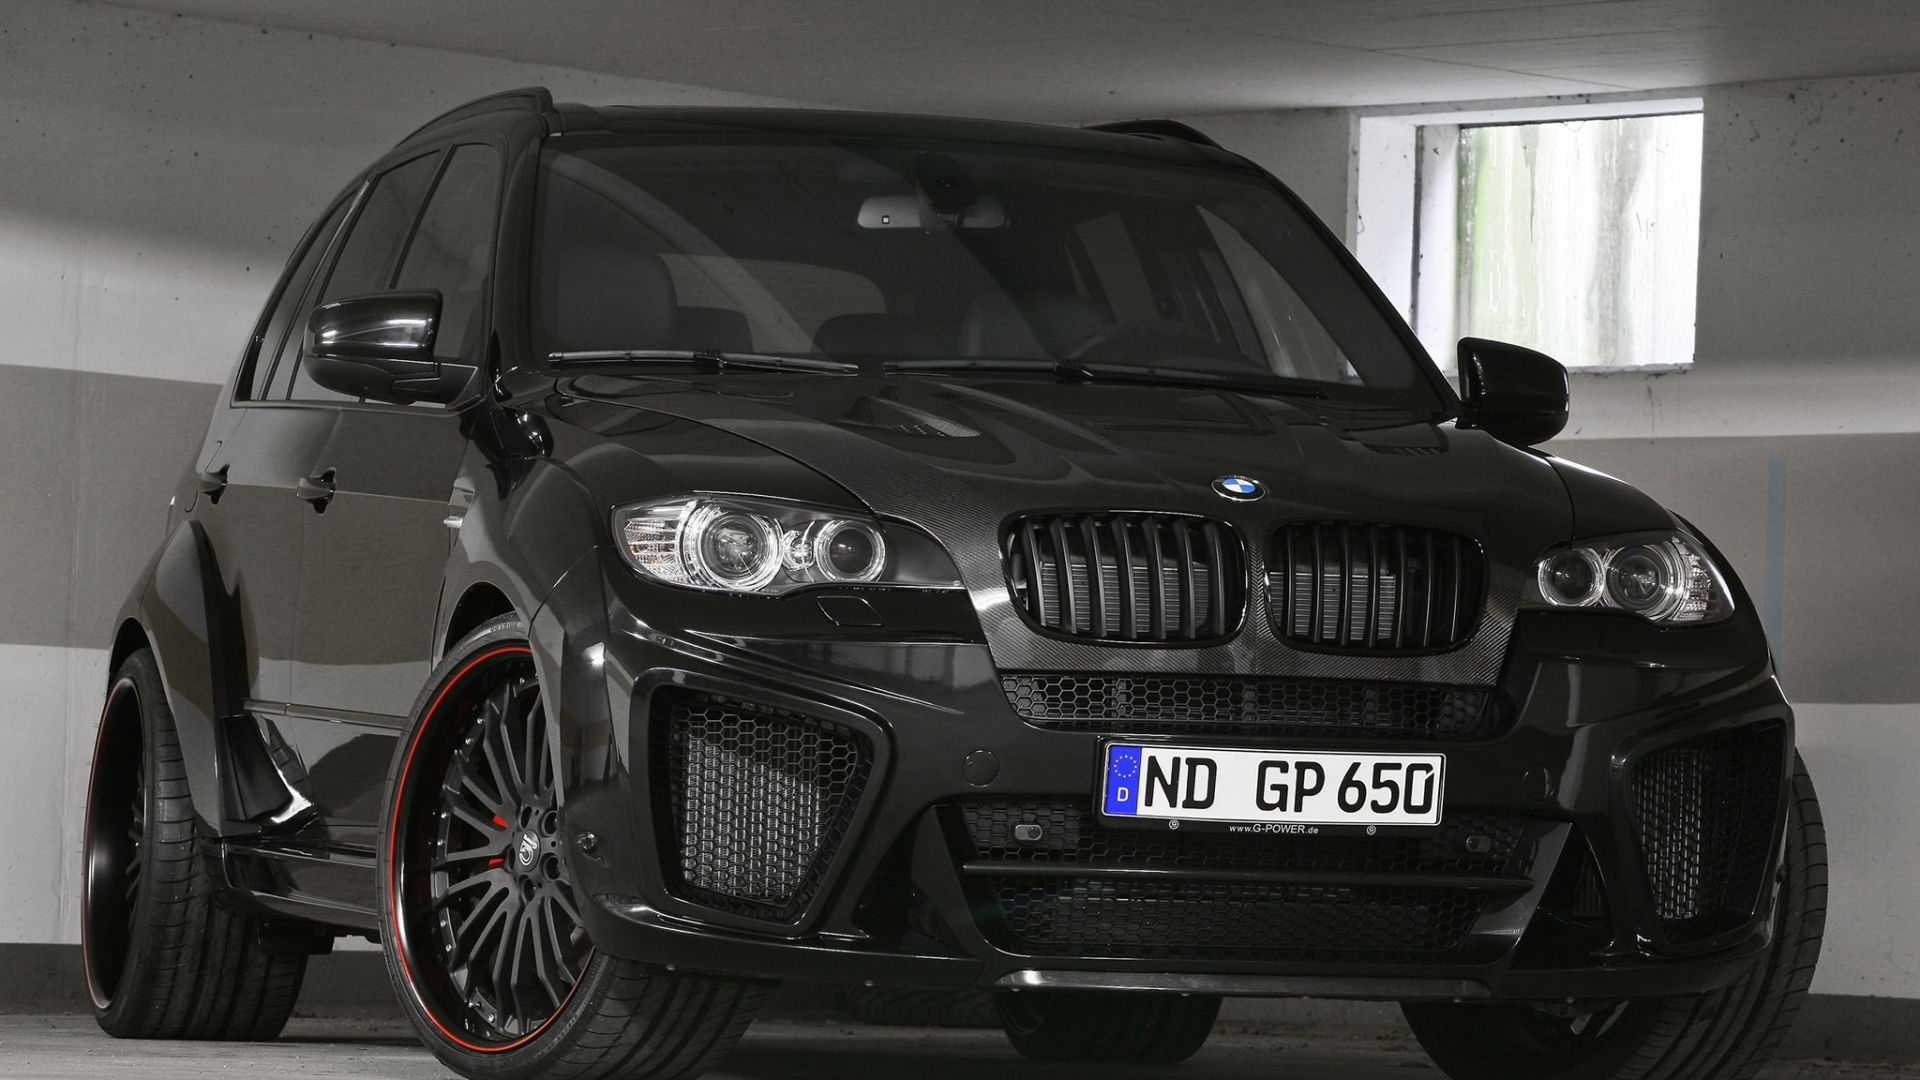 Bmw Hybrid Car Modified Wallpaper Fresh Bmw X5 Wallpapers Bmw Car Wallpapers and Backgrounds Euro Auto Of Best Of Bmw Hybrid Car Modified Wallpaper